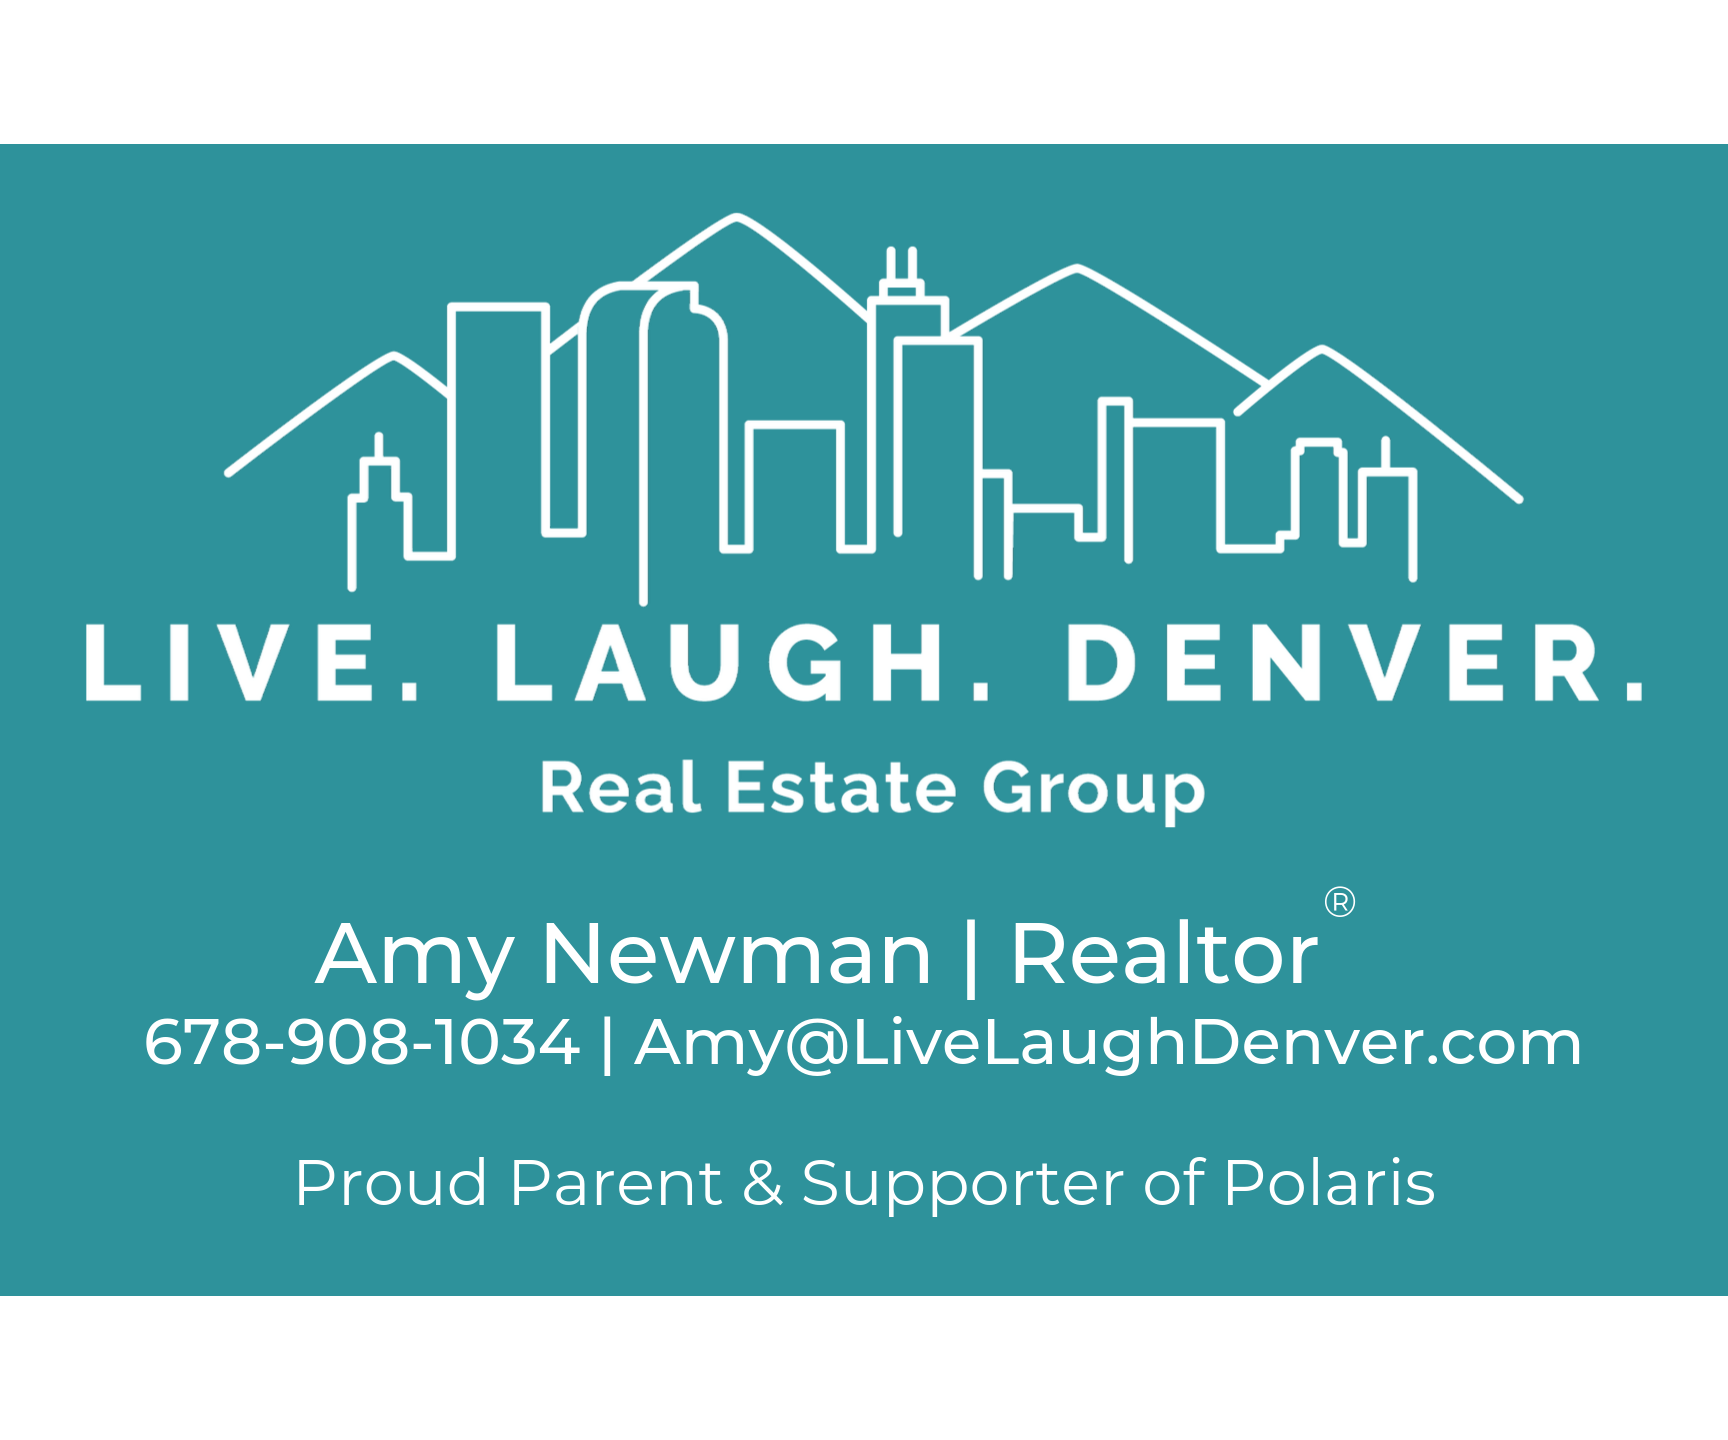 https://livelaughdenver.com/